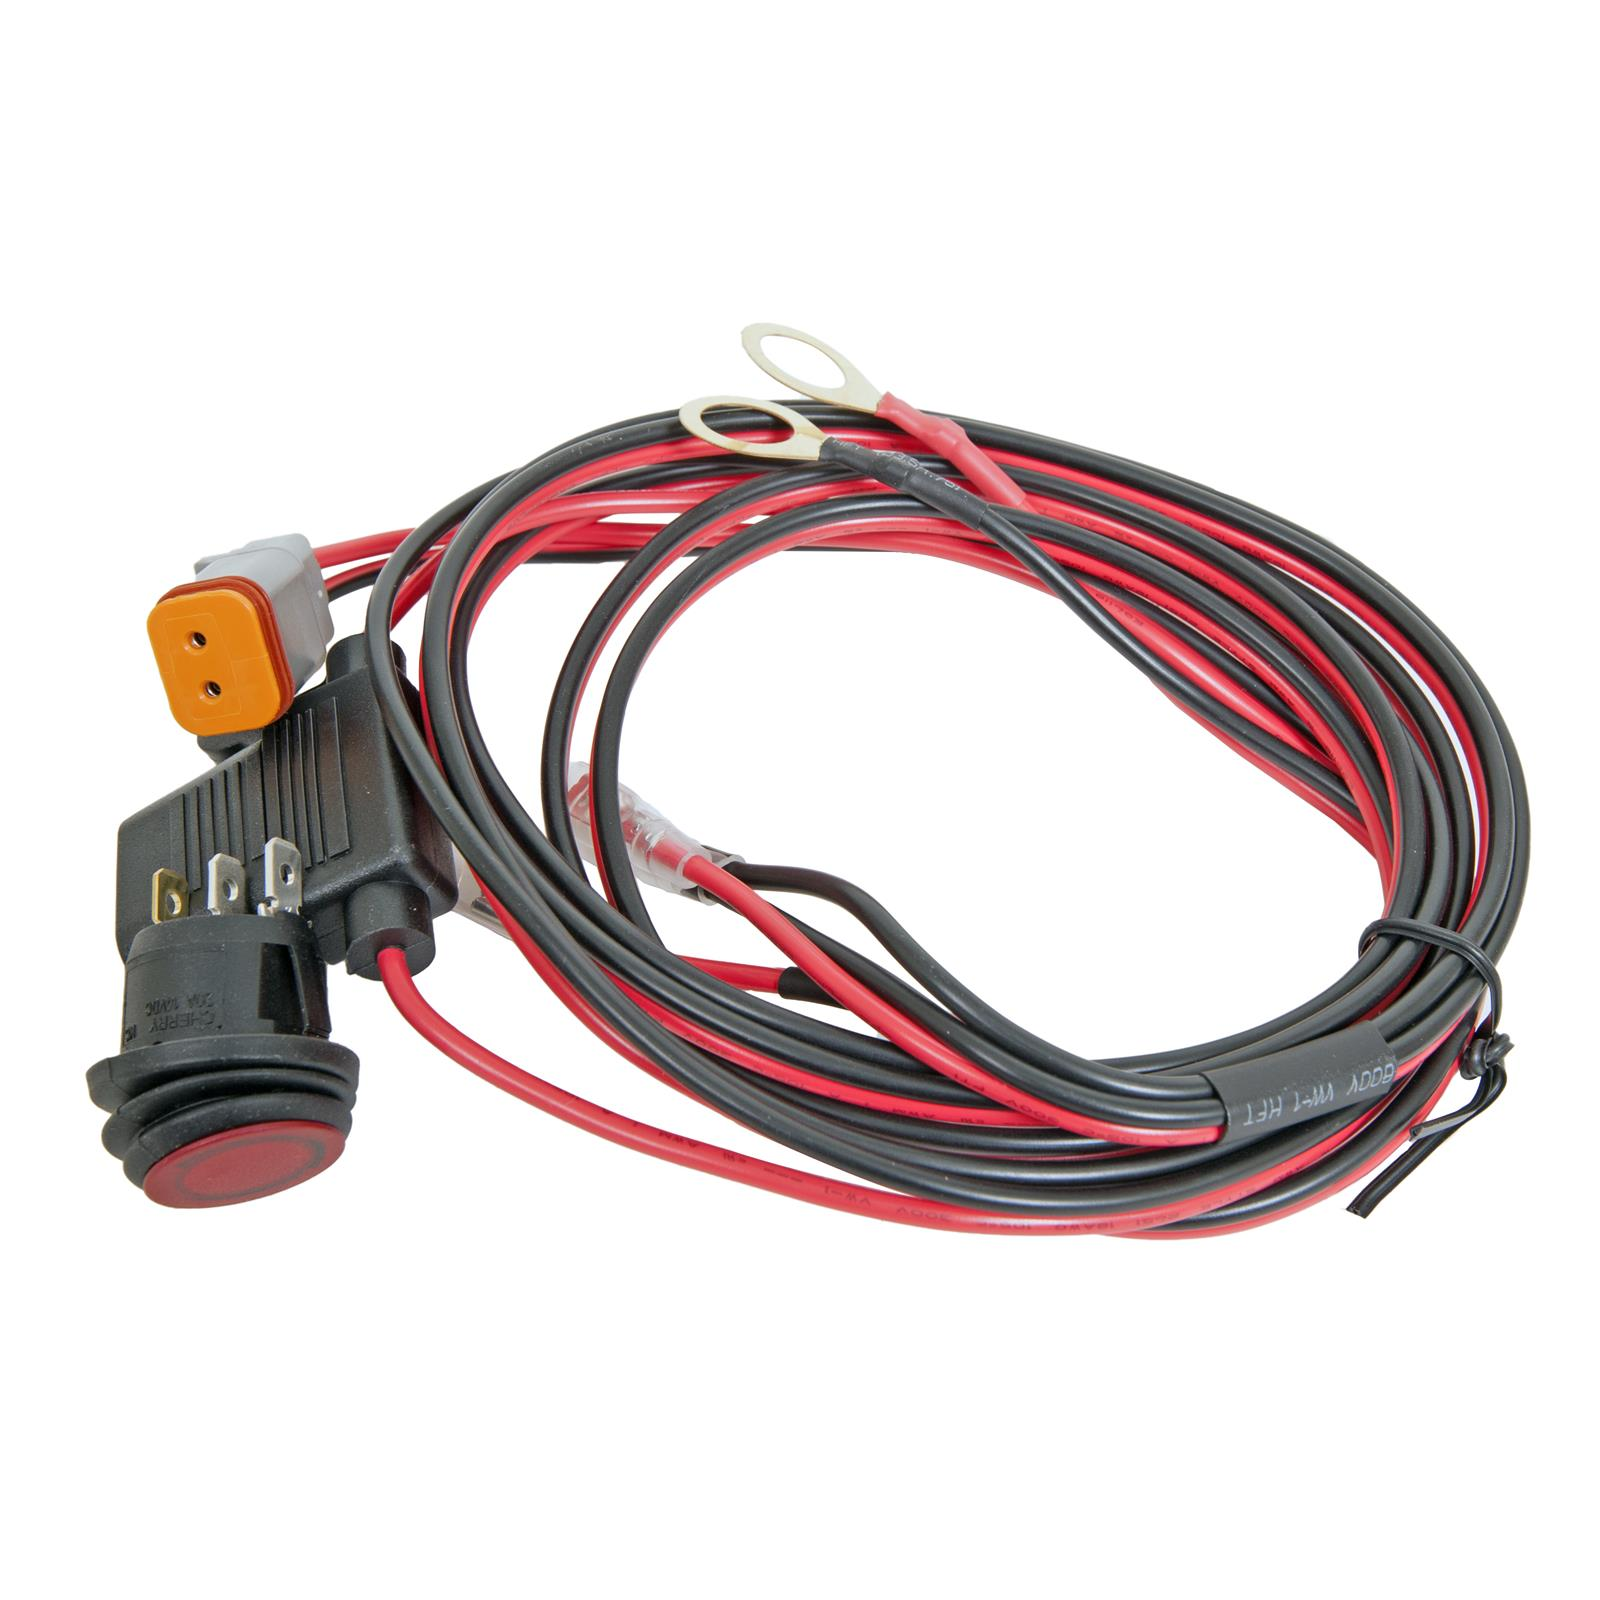 rigid industries srm srq series light wiring harnesses 40199 freerigid industries srm srq series light wiring harnesses 40199 free shipping on orders over $99 at summit racing